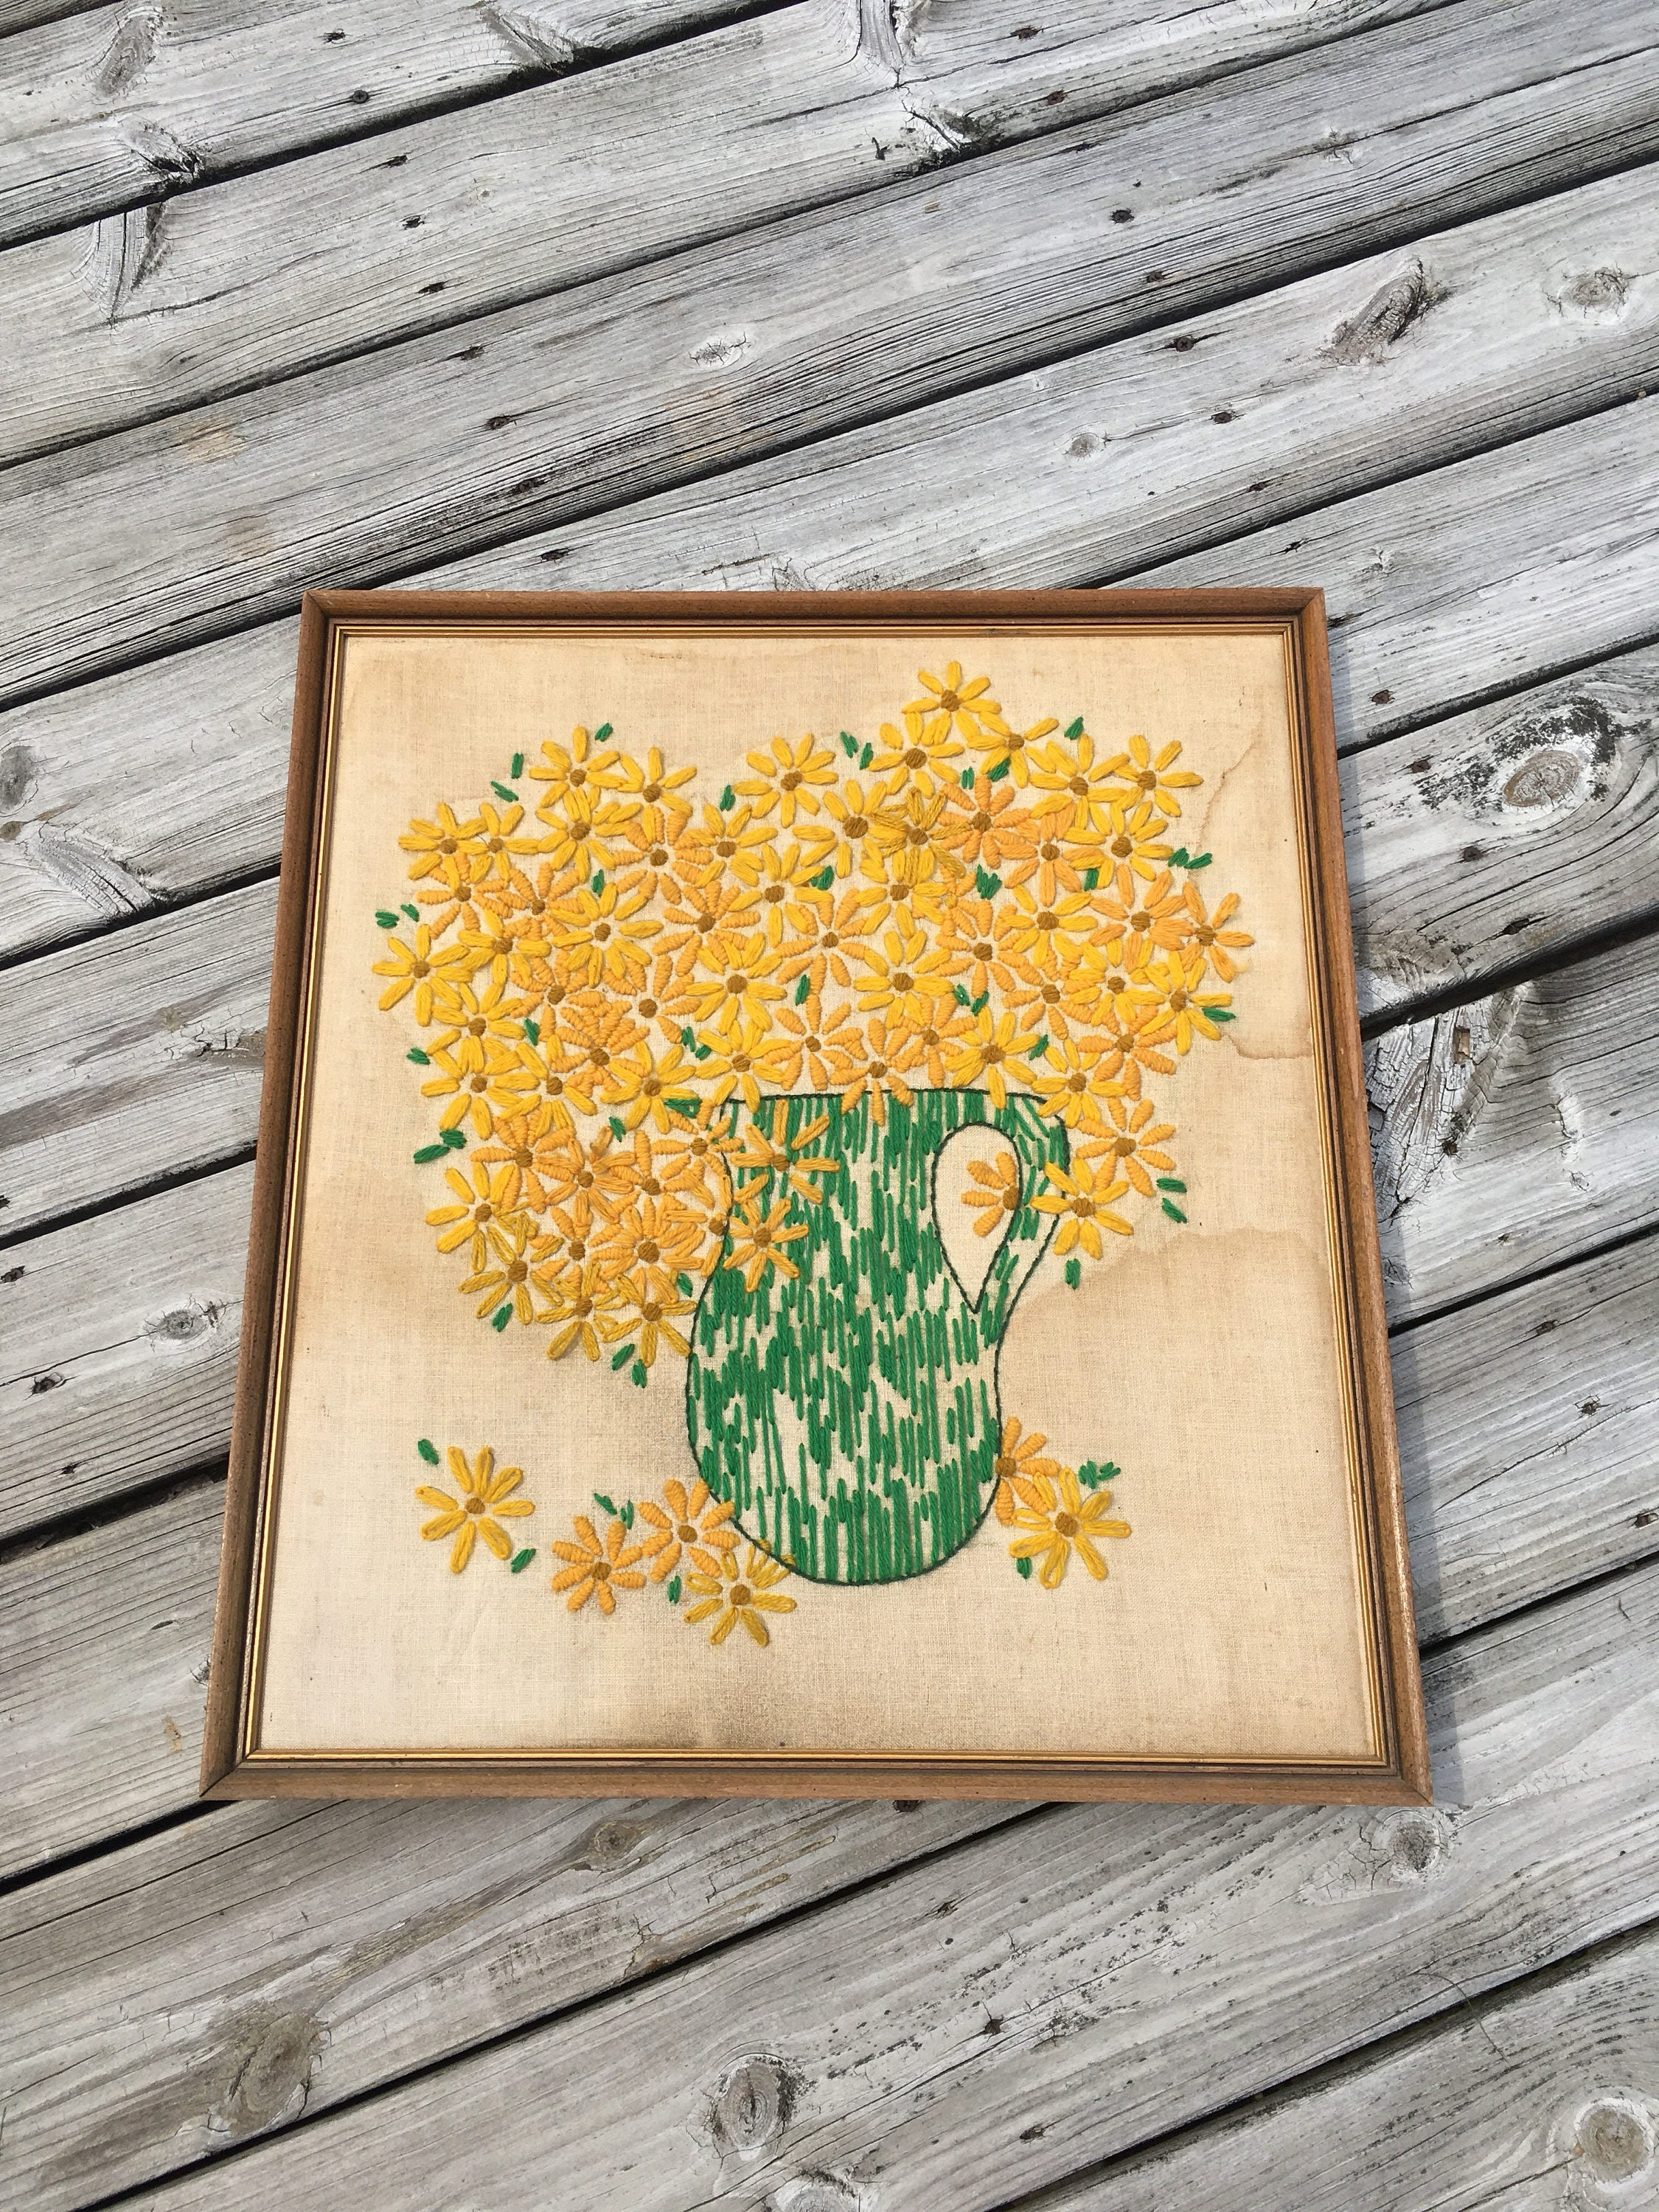 Framed Needlepoint Wall Art Crewel Wall Hanging Embroidered